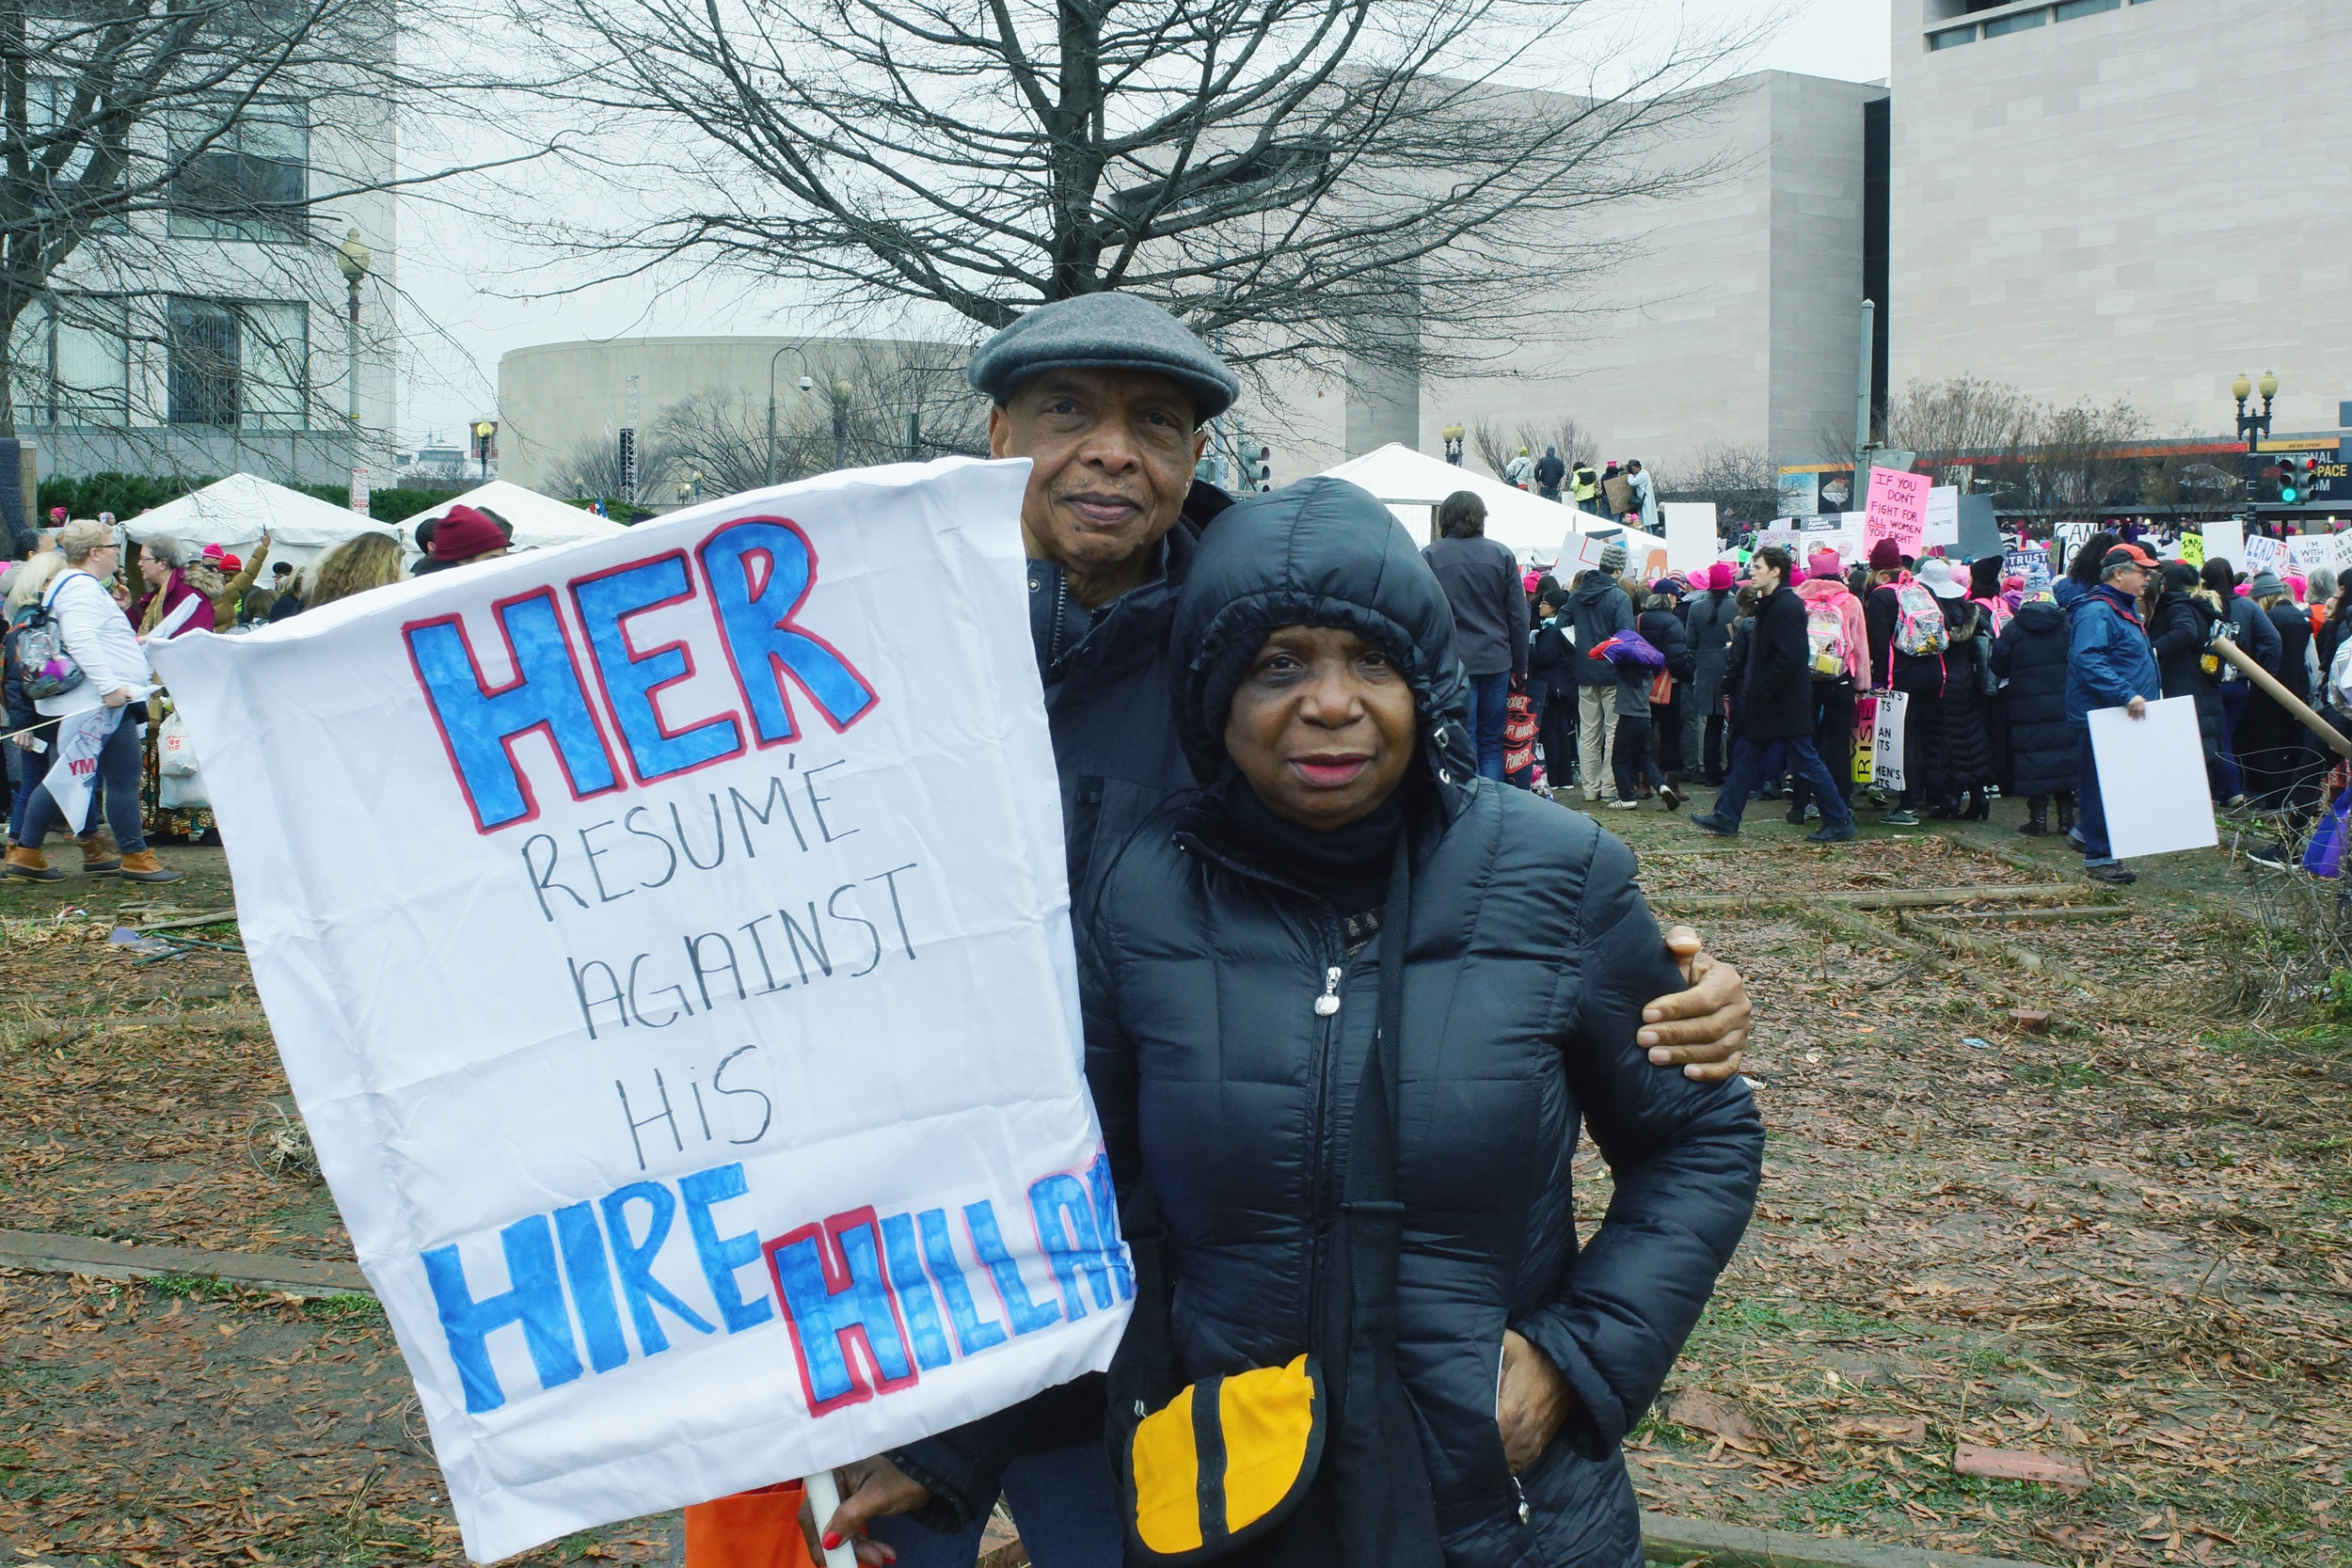 """[Image description: Virgil and Mary, an older black couple in winter coats stand holding a sign that says """"Her resume against his. Hire Hillary."""" Virgil wears a cap and has his arm around the Mary's shoulder. They look into the camera with serious expressions.]"""